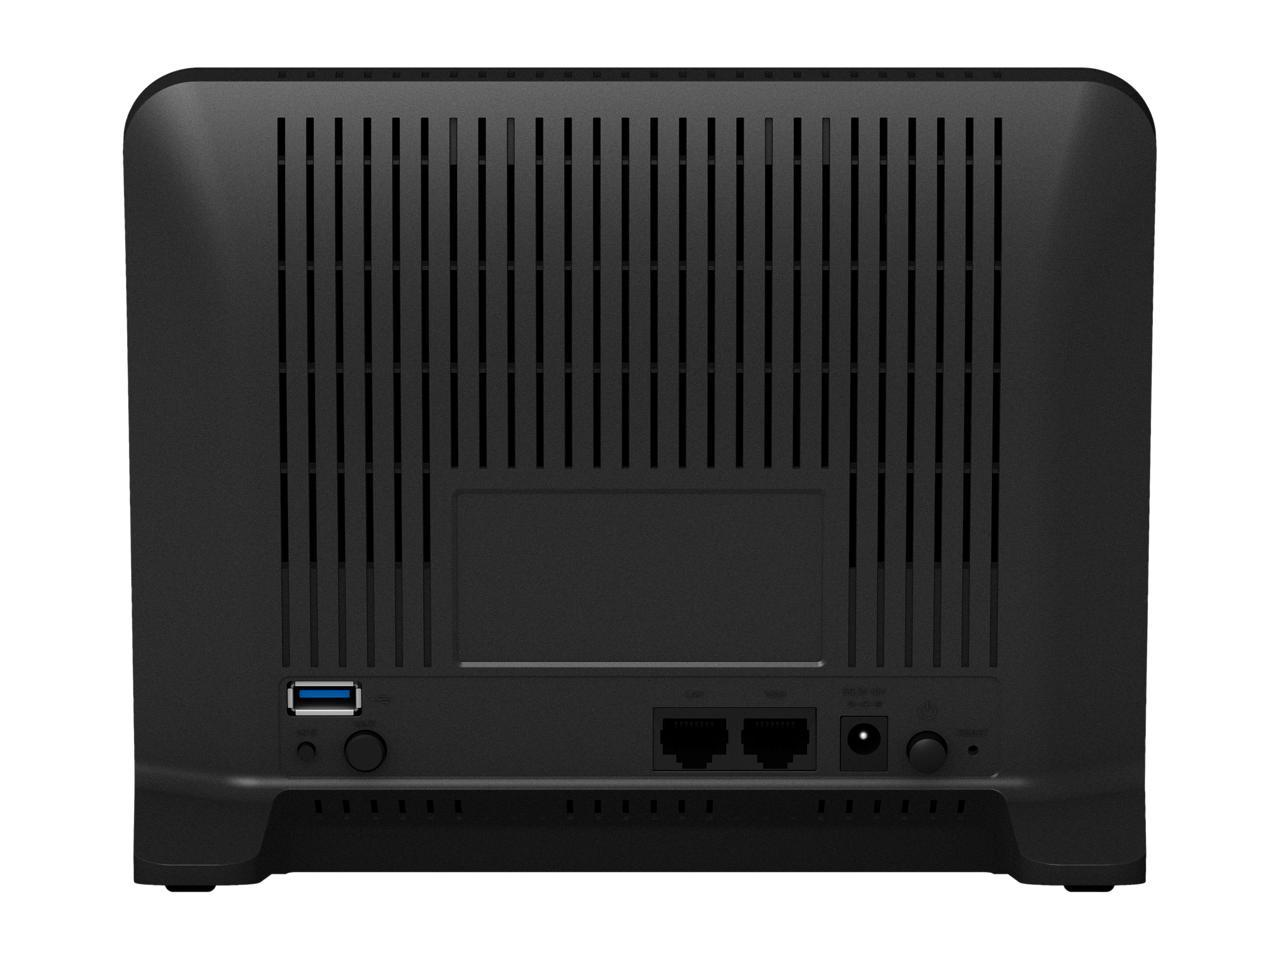 Synology MR2200ac Mesh Wi-Fi Router - Newegg.com